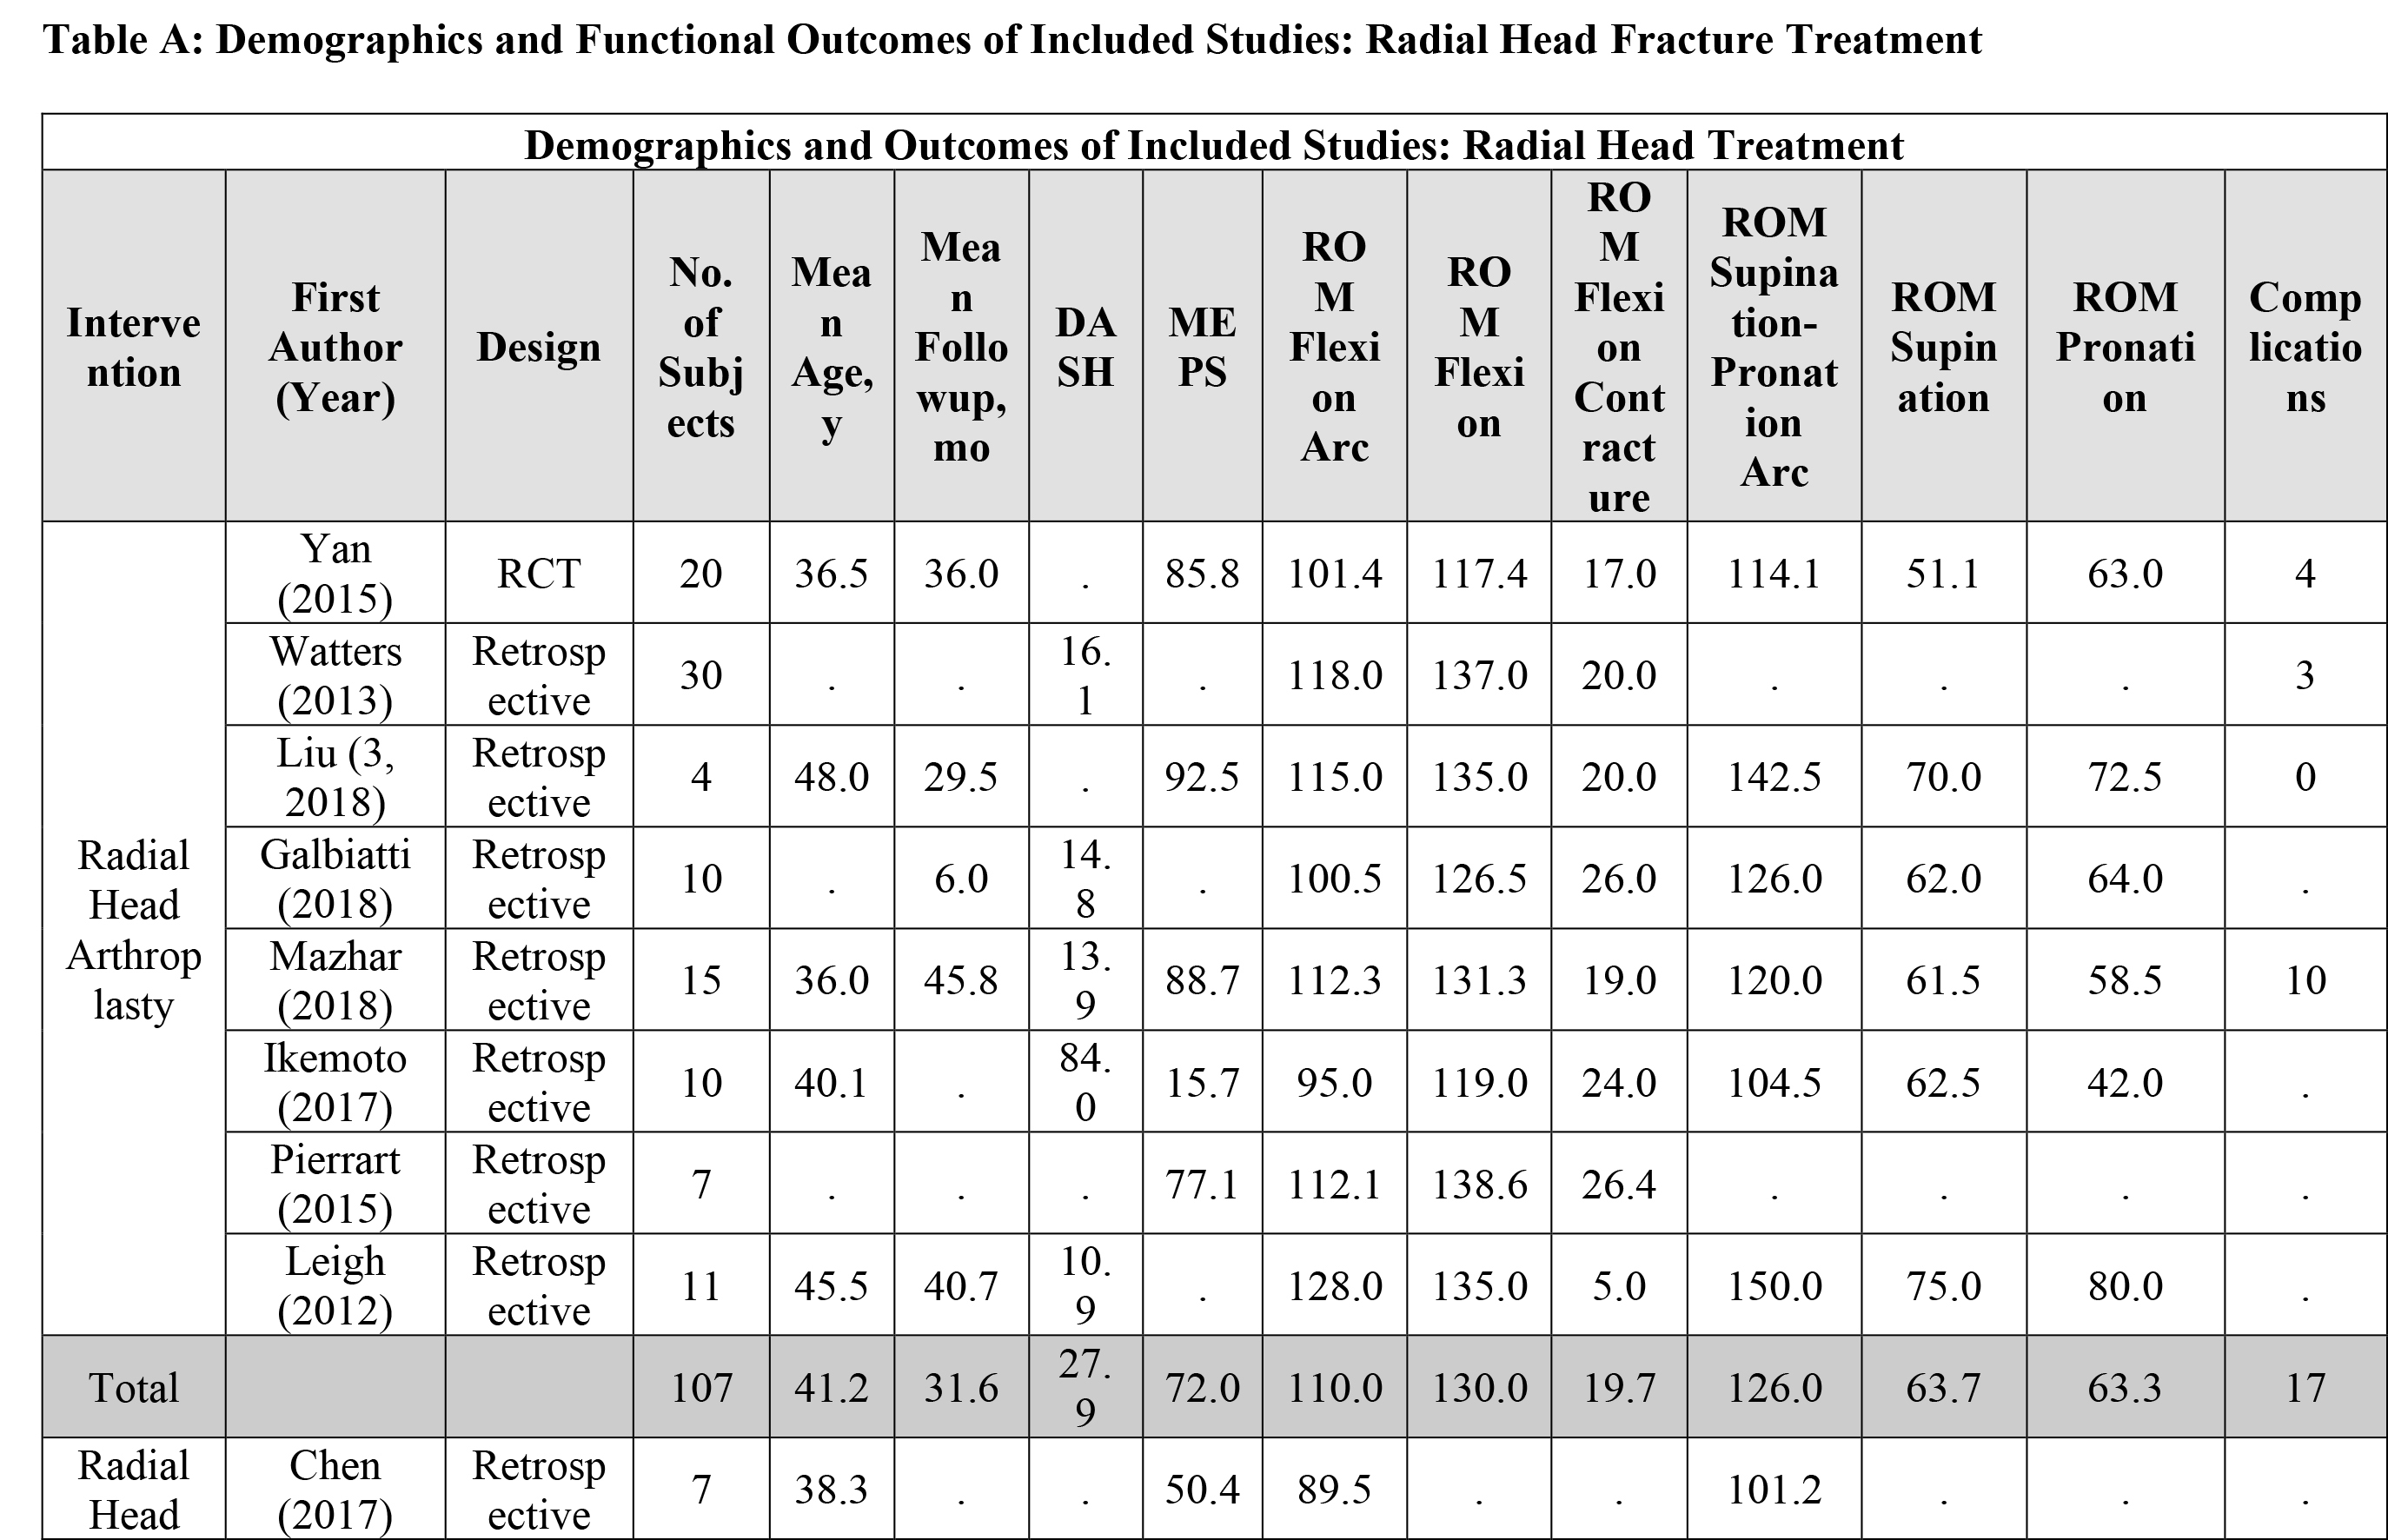 Demographics and Functional Outcomes of Included Studies: Radial Head Fracture Treatment